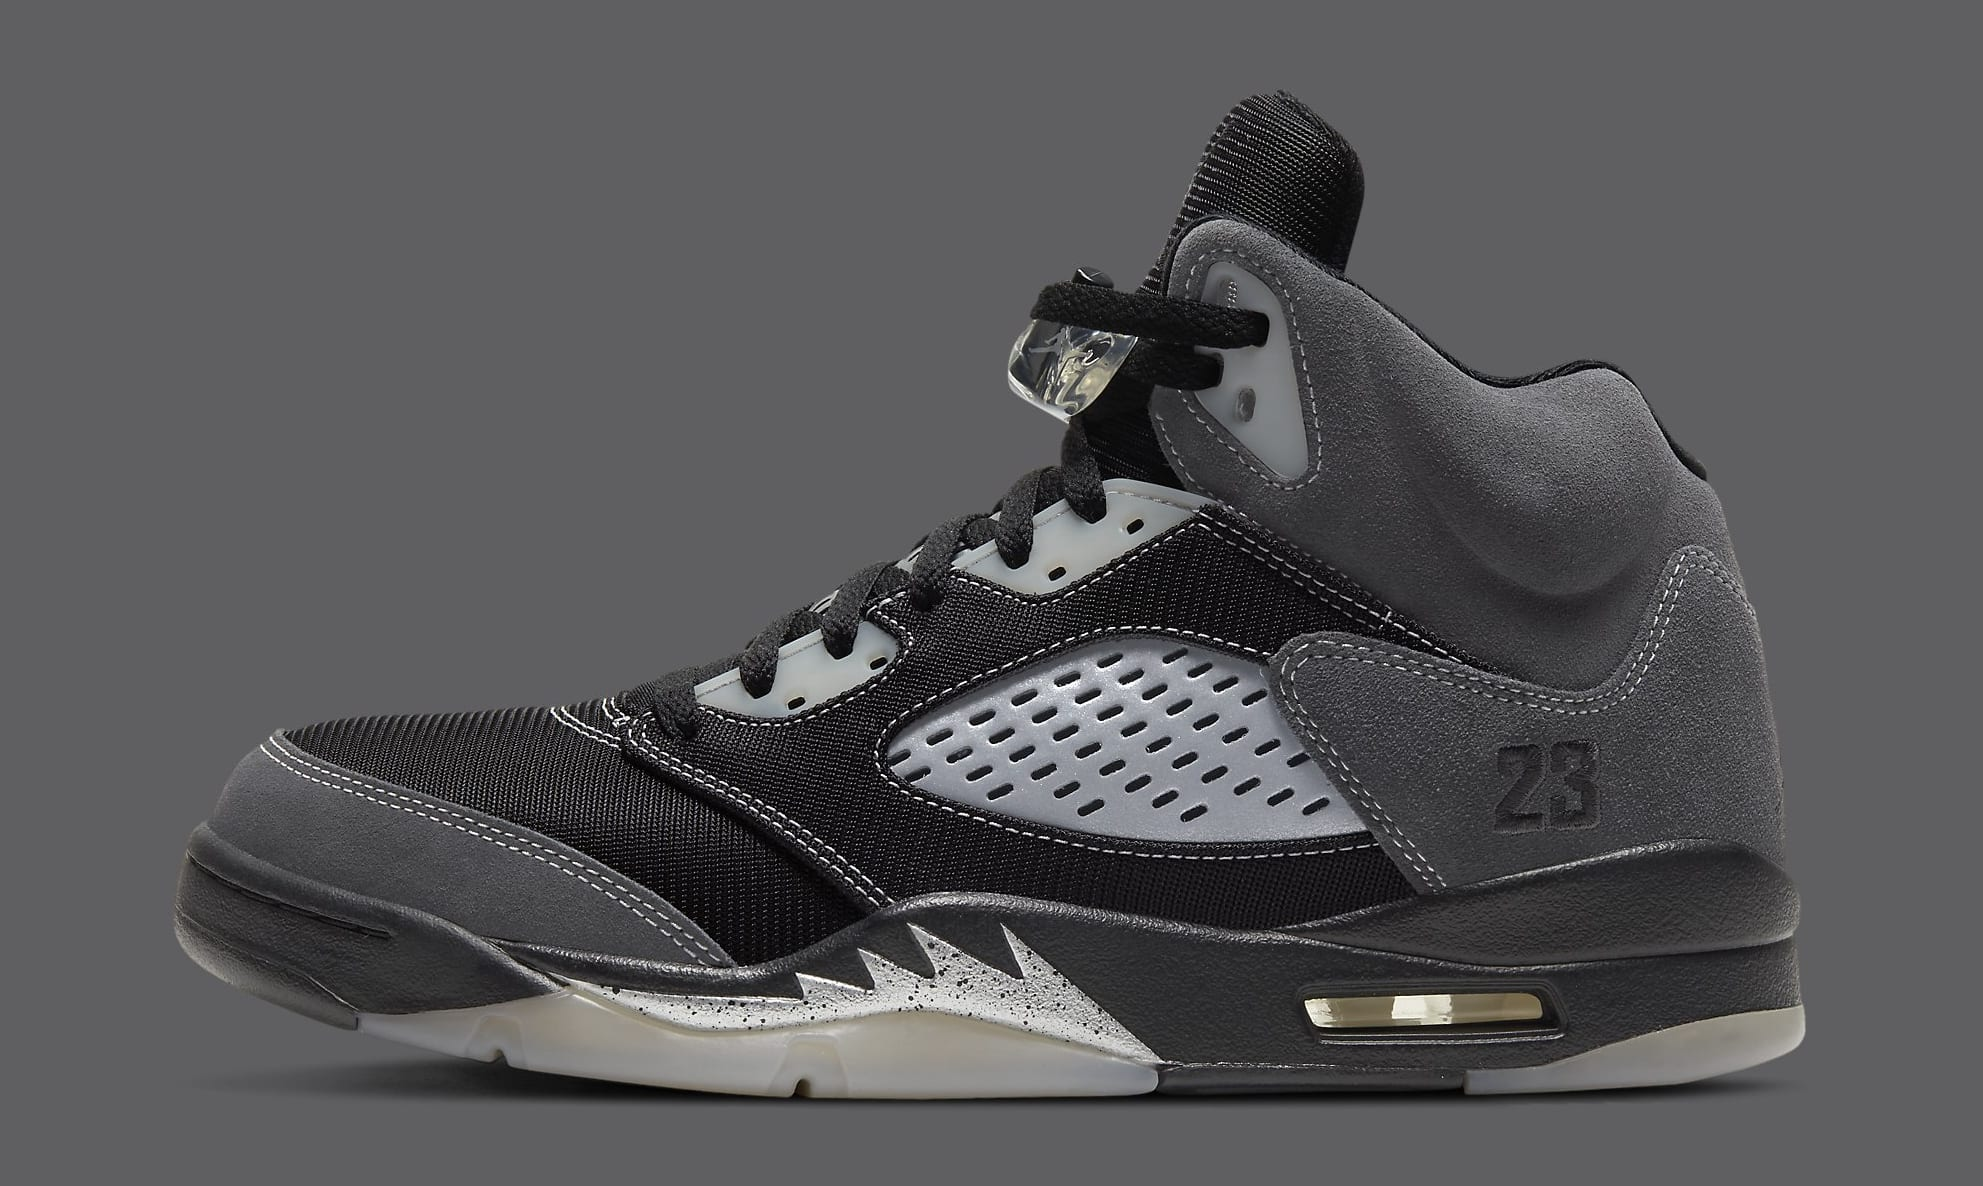 Air Jordan 5 Retro 'Anthracite' DB0731-001 Lateral